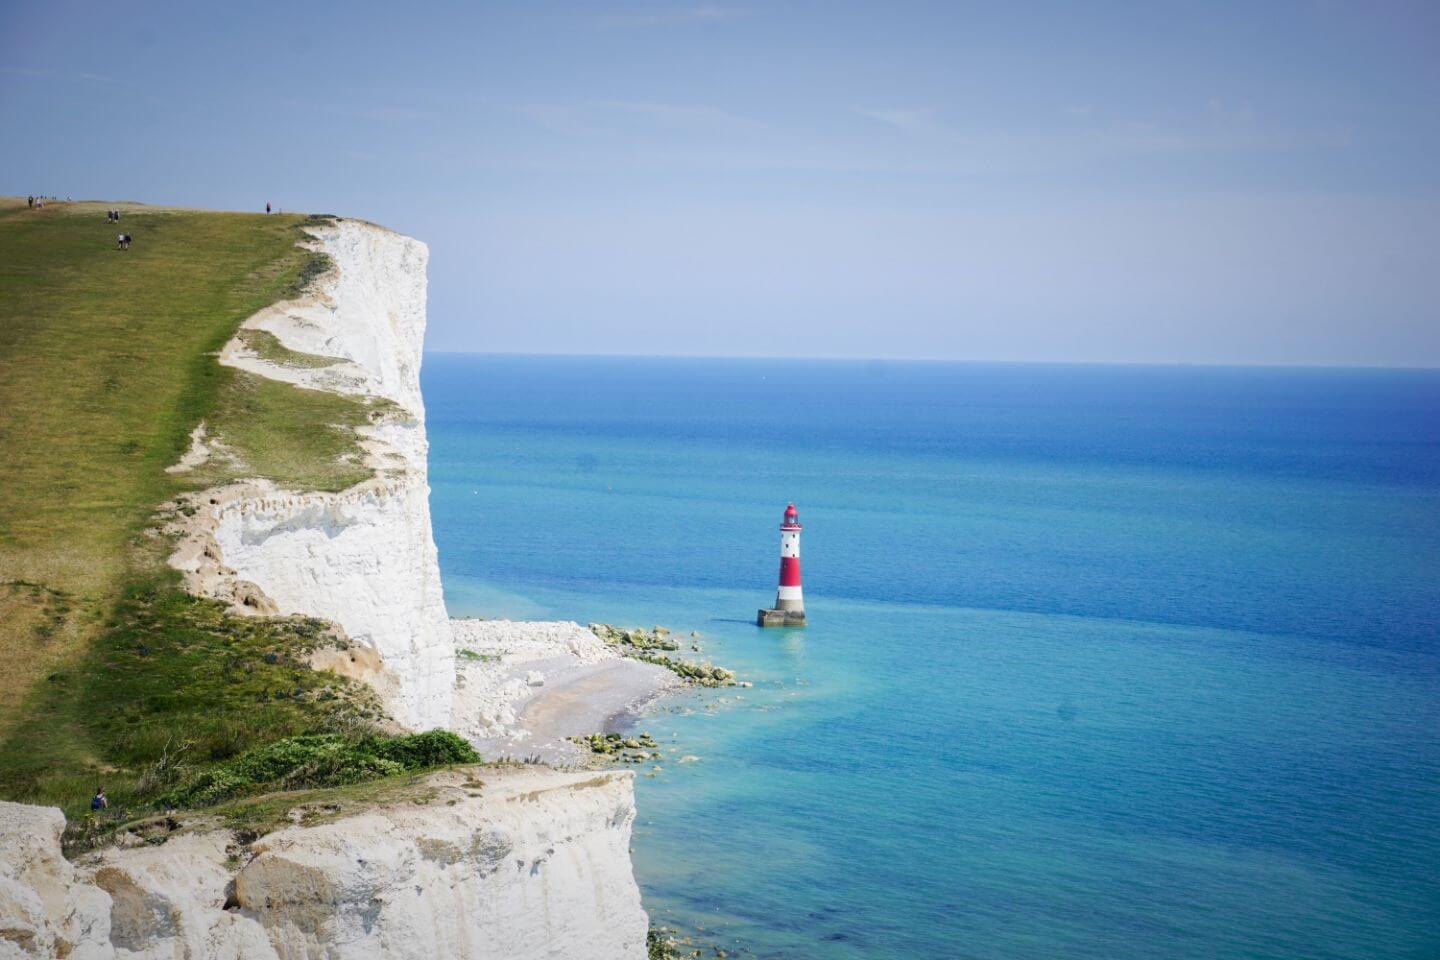 Beachy Head Lighthouse, Seaford to Eastbourne walk